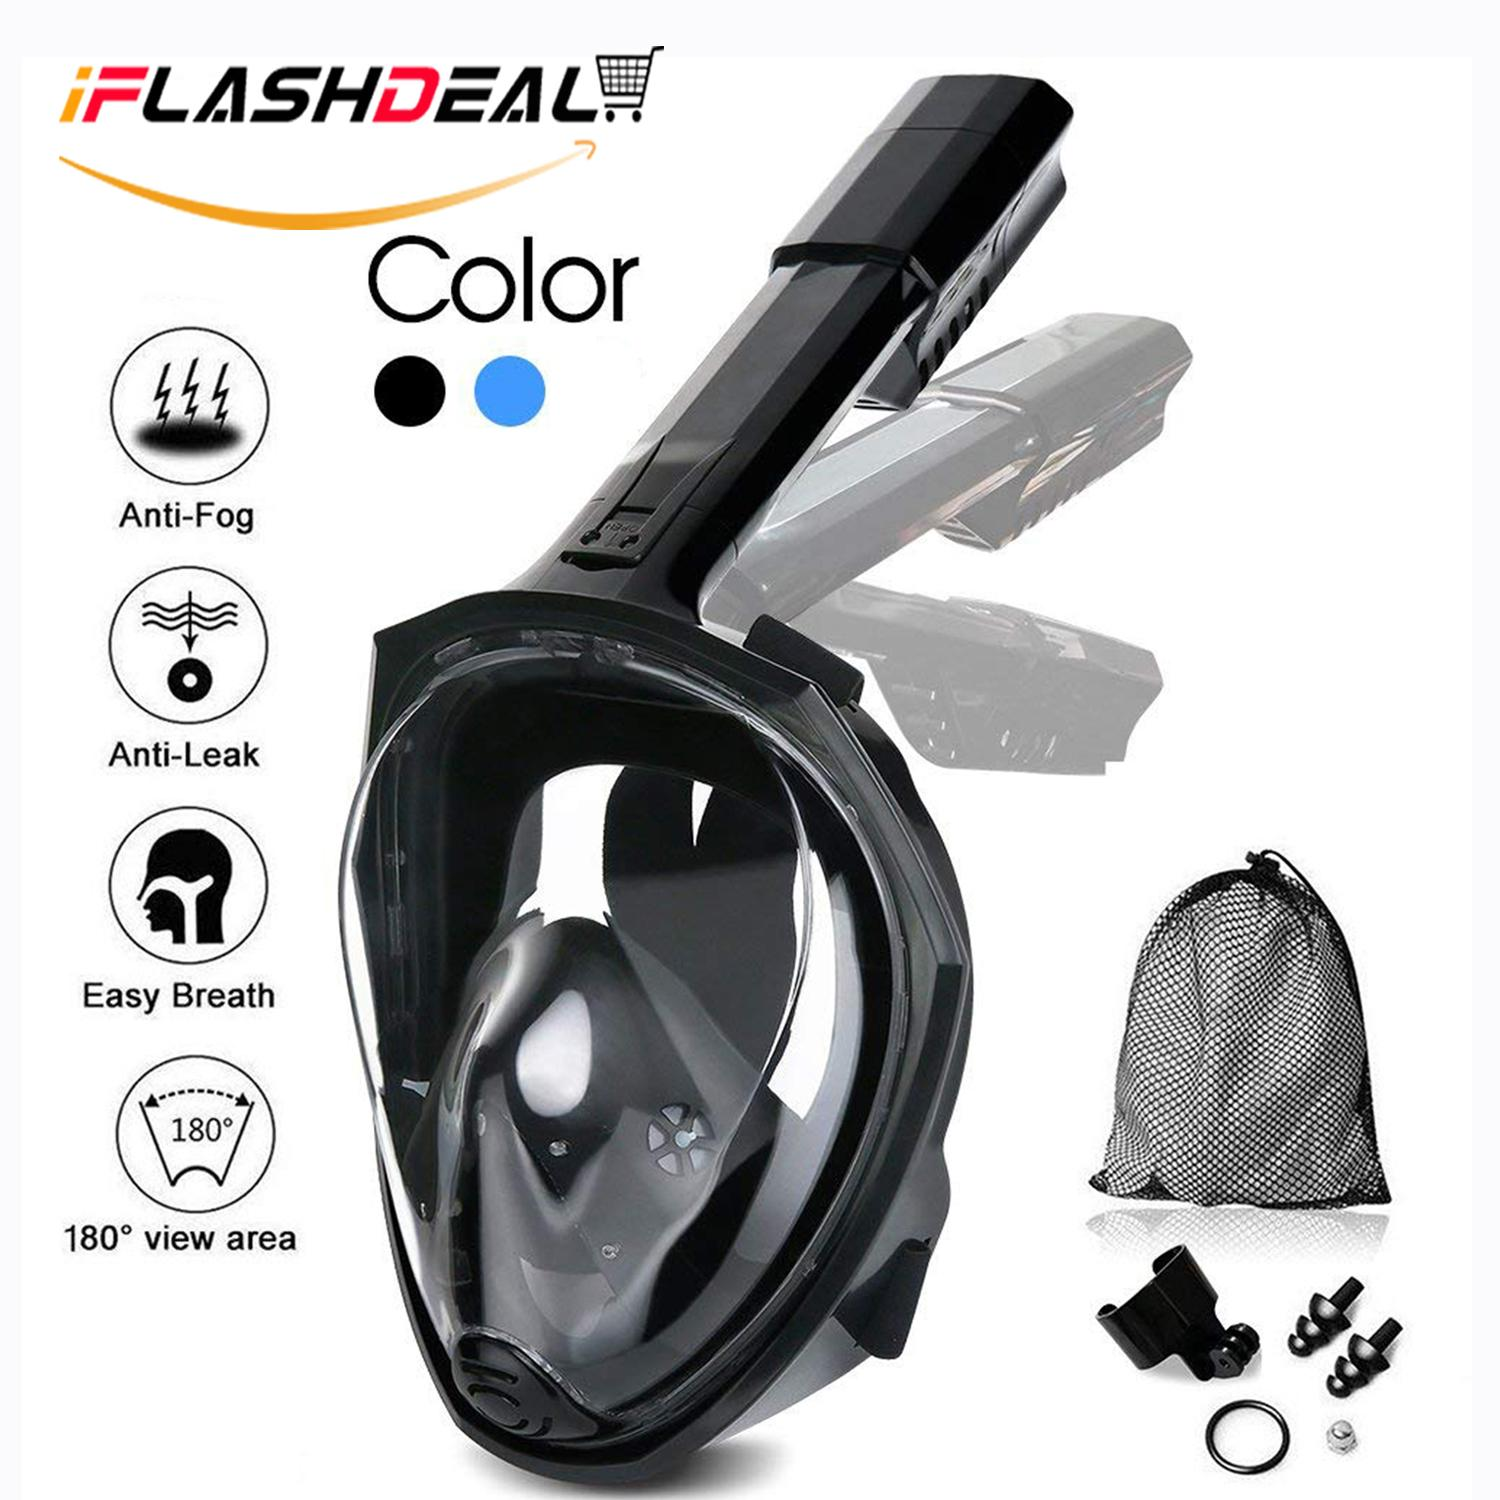 iFlashDeal 180° Full Face Snorkel Mask with Panoramic View Anti-Fog Anti- Leak